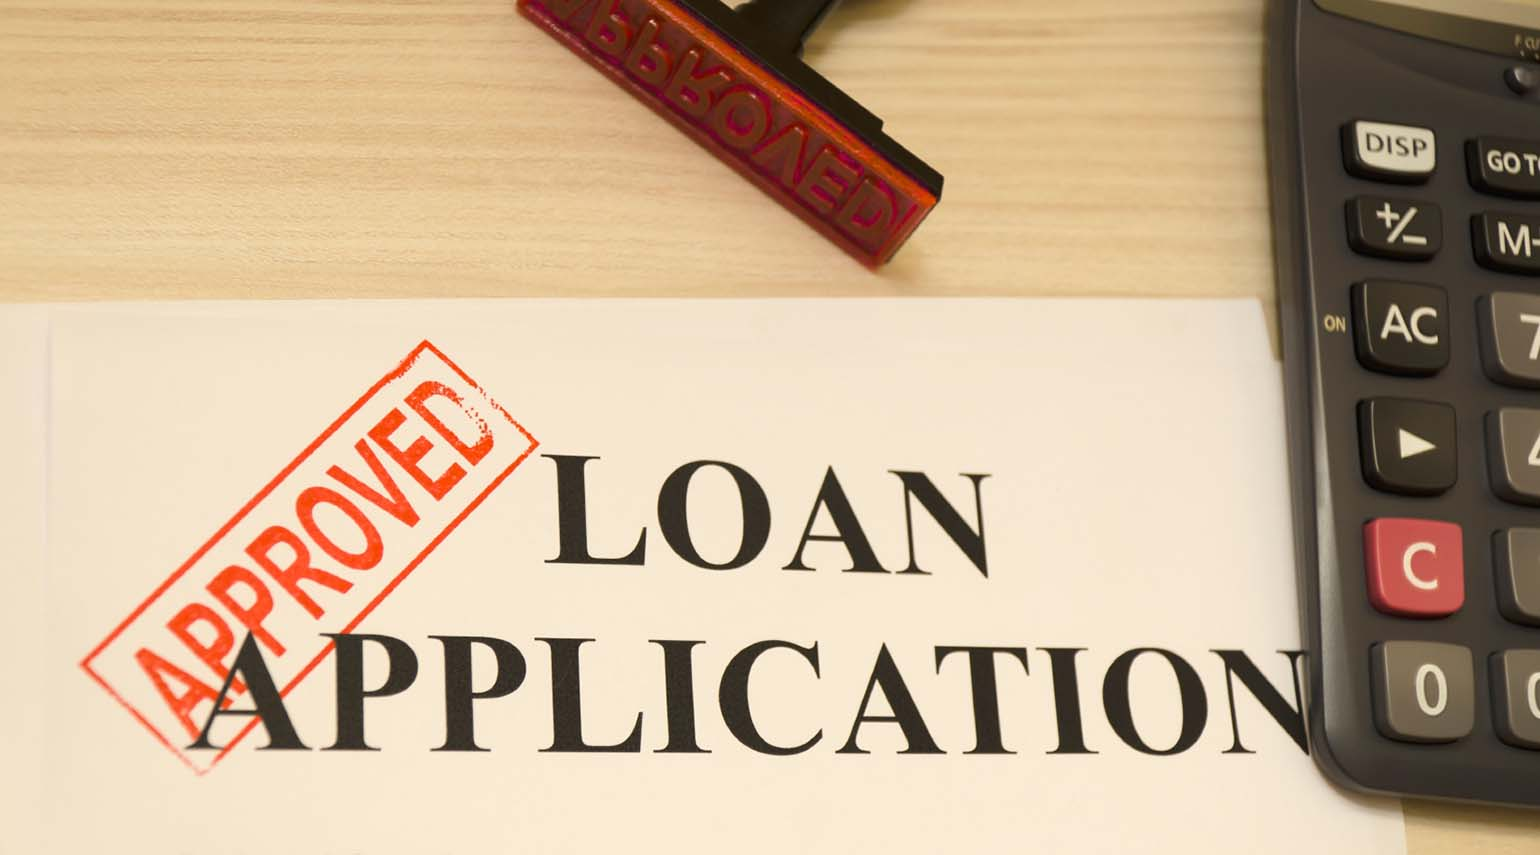 Bank Loans For Real Estate Purchase Overview Of The. Conference Telephone Calls Team Building Usa. Pest Control Rockford Il Home Depot Associate. Business Listing By Zip Code. Dishwasher Service Repair Math Tutors Seattle. Stress Causing Hair Loss Bond Options Trading. Depression Medication That Causes Weight Loss. Top Online Bachelor Degree Programs. Lanesboro Sales Commission Dentist In Lynn Ma